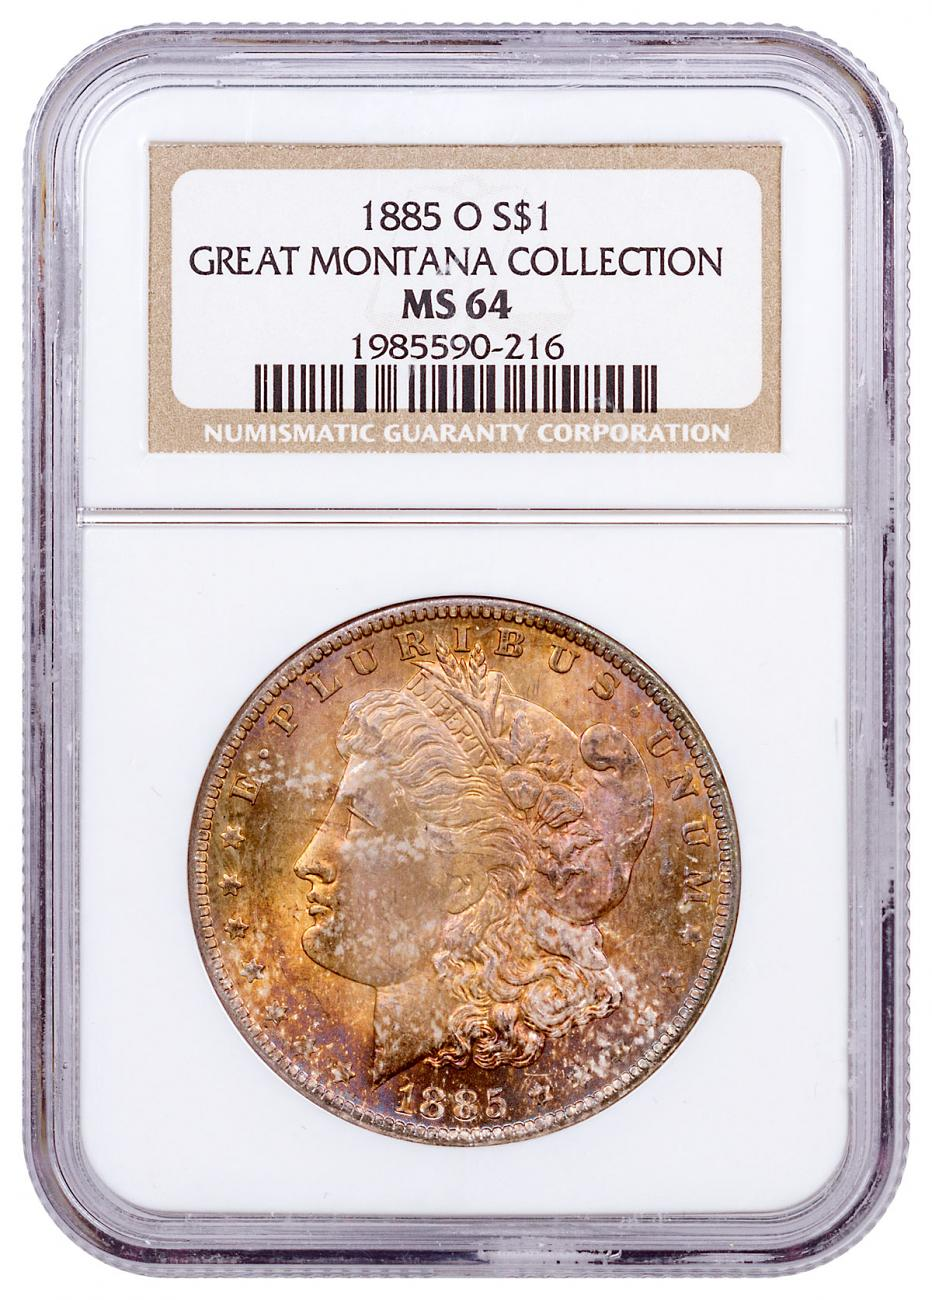 1885-O Morgan Silver Dollar From the Great Montana Collection NGC MS64 CPCR 0216